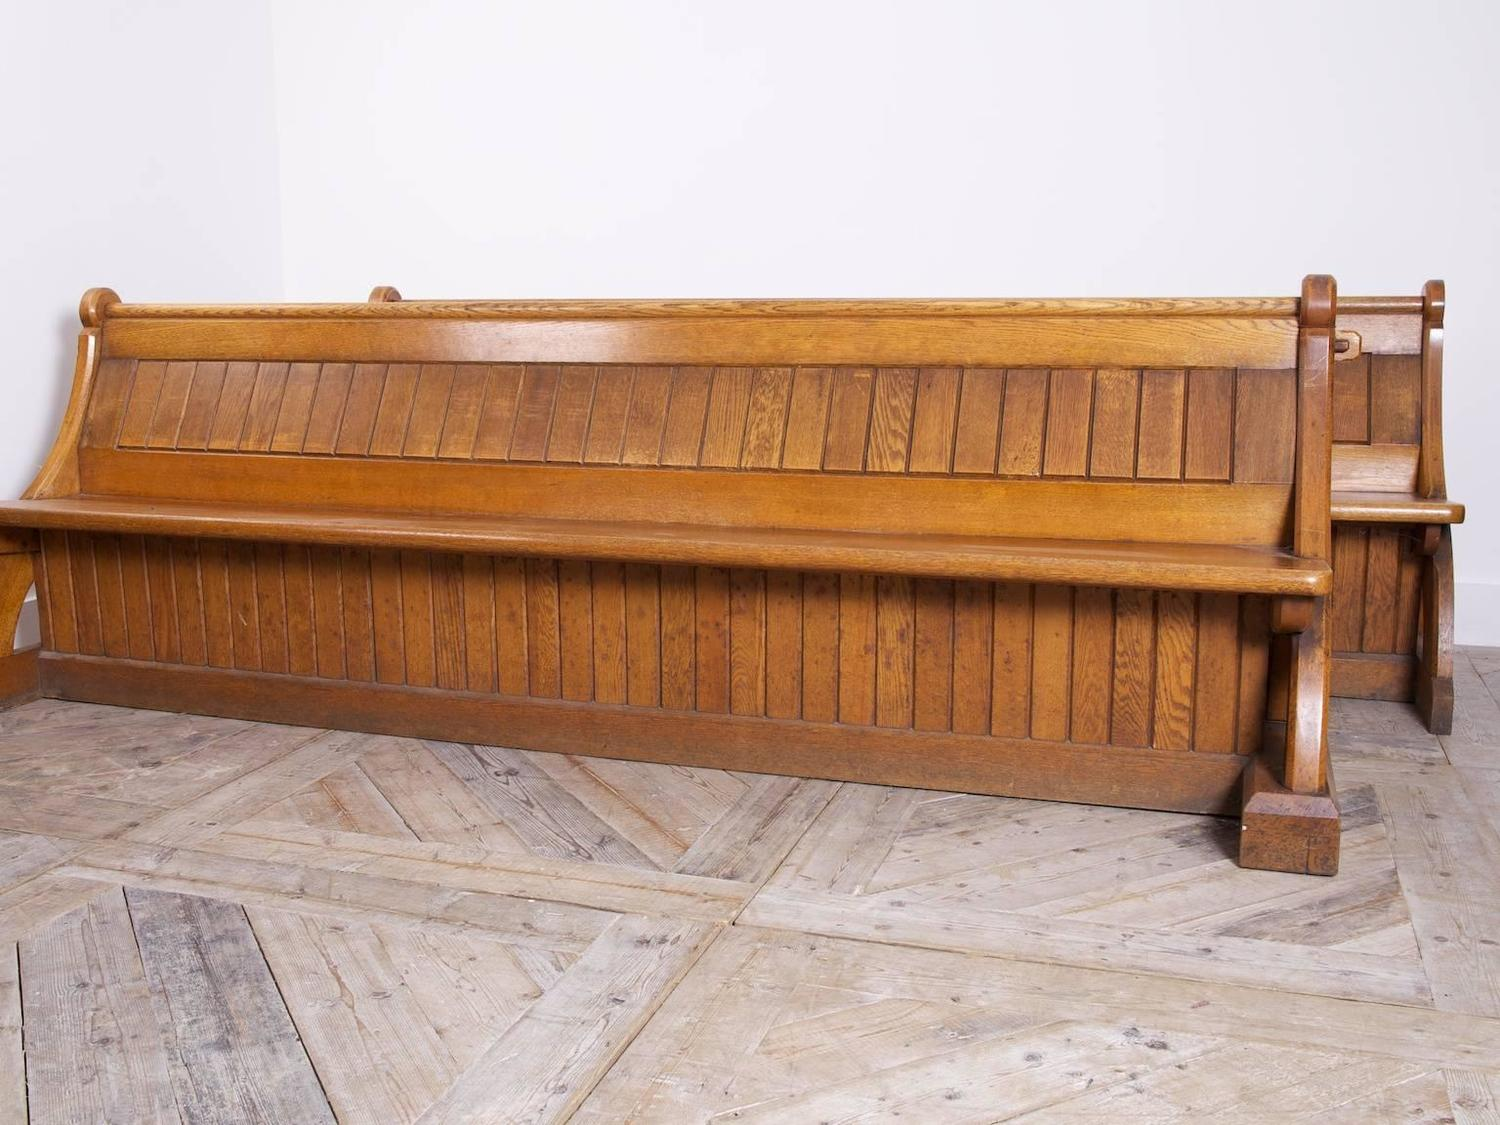 church benches for sale 28 images old church benches for sale thousands of the most church. Black Bedroom Furniture Sets. Home Design Ideas